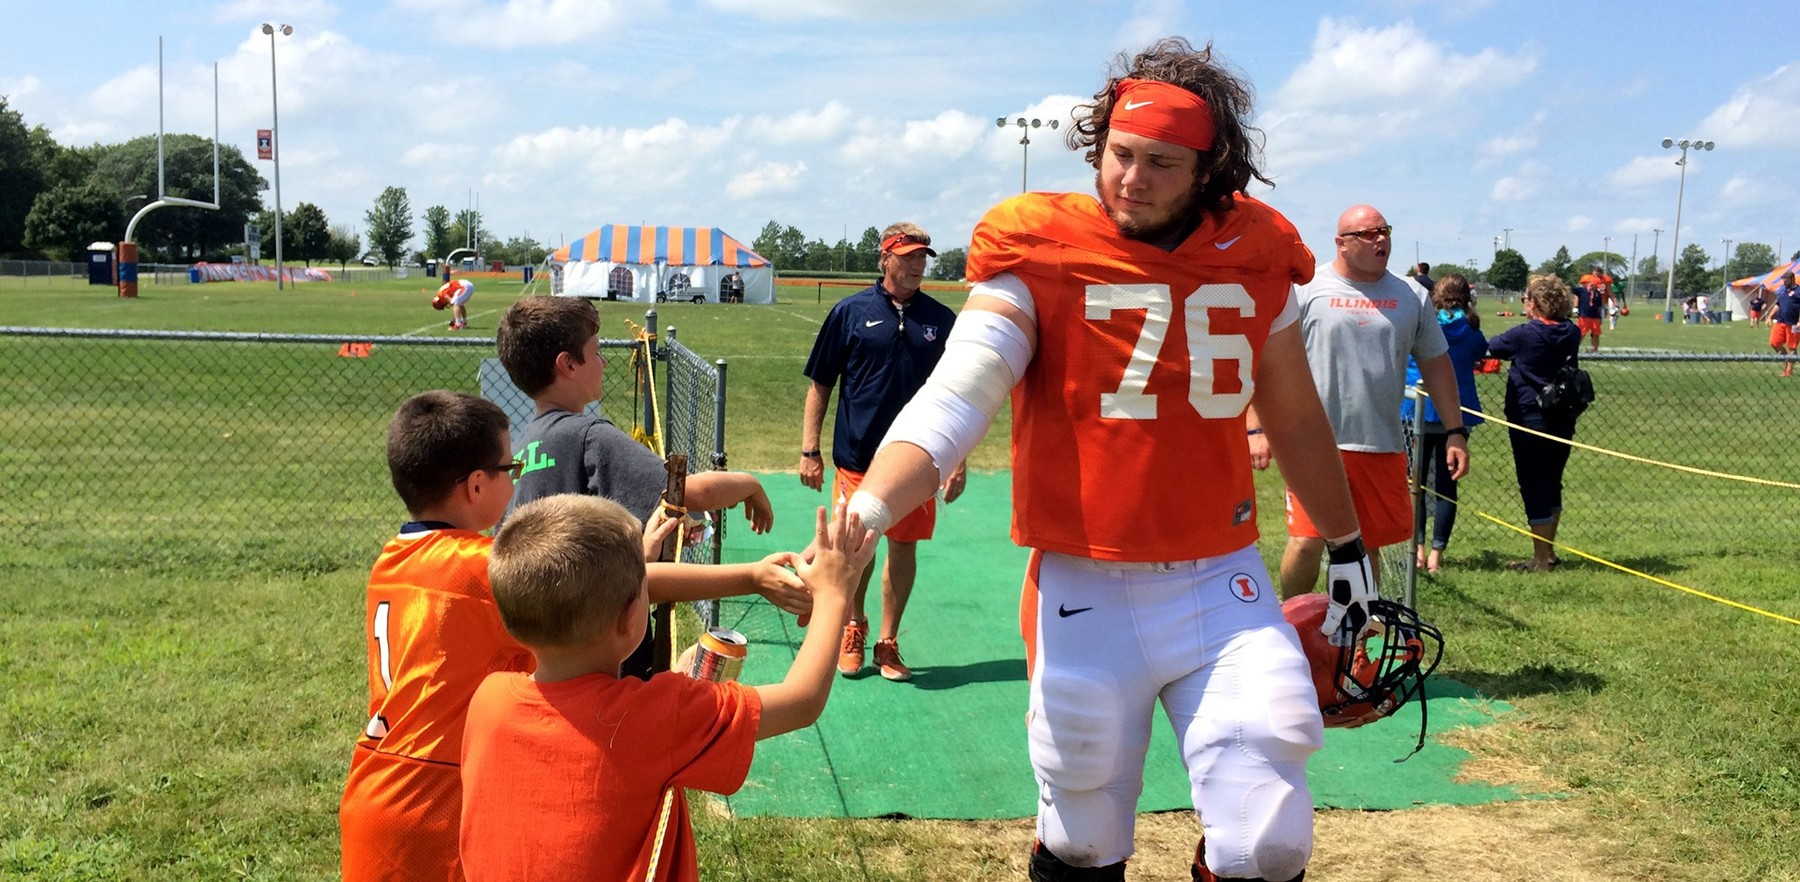 image of Illinois offensive linebacker zeke martin high-fiving young fans